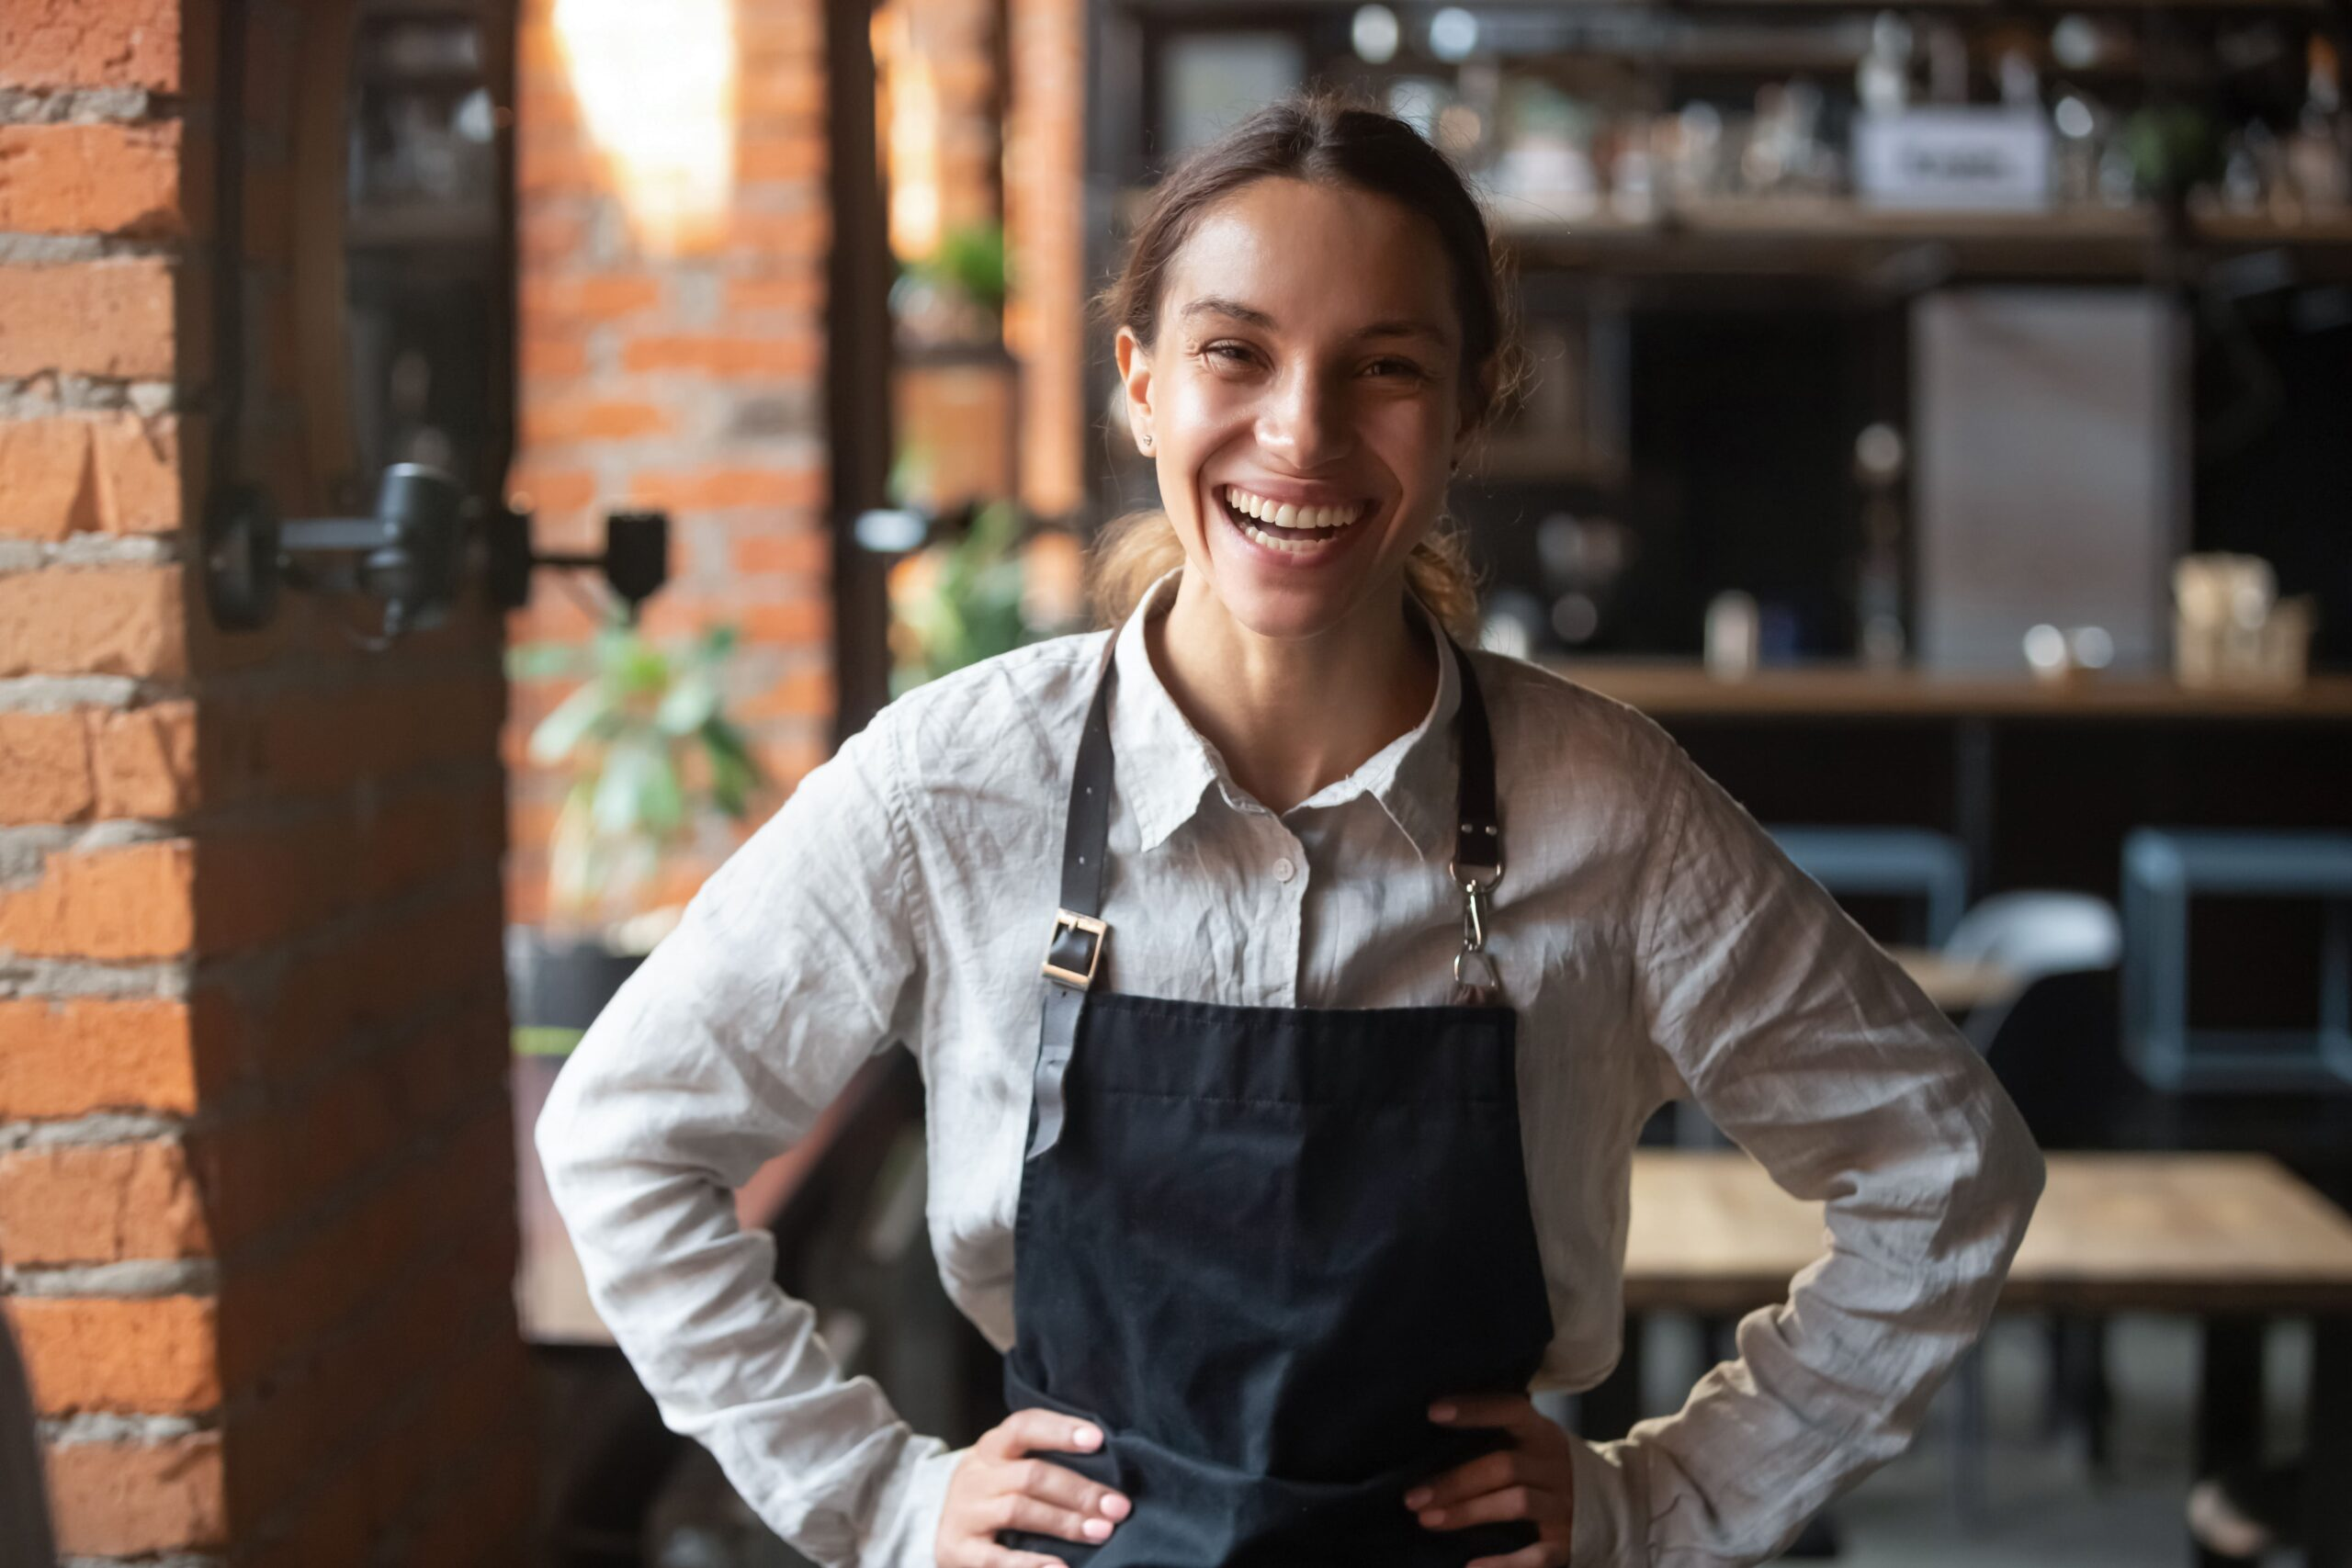 A small business owner with an apron on smiling